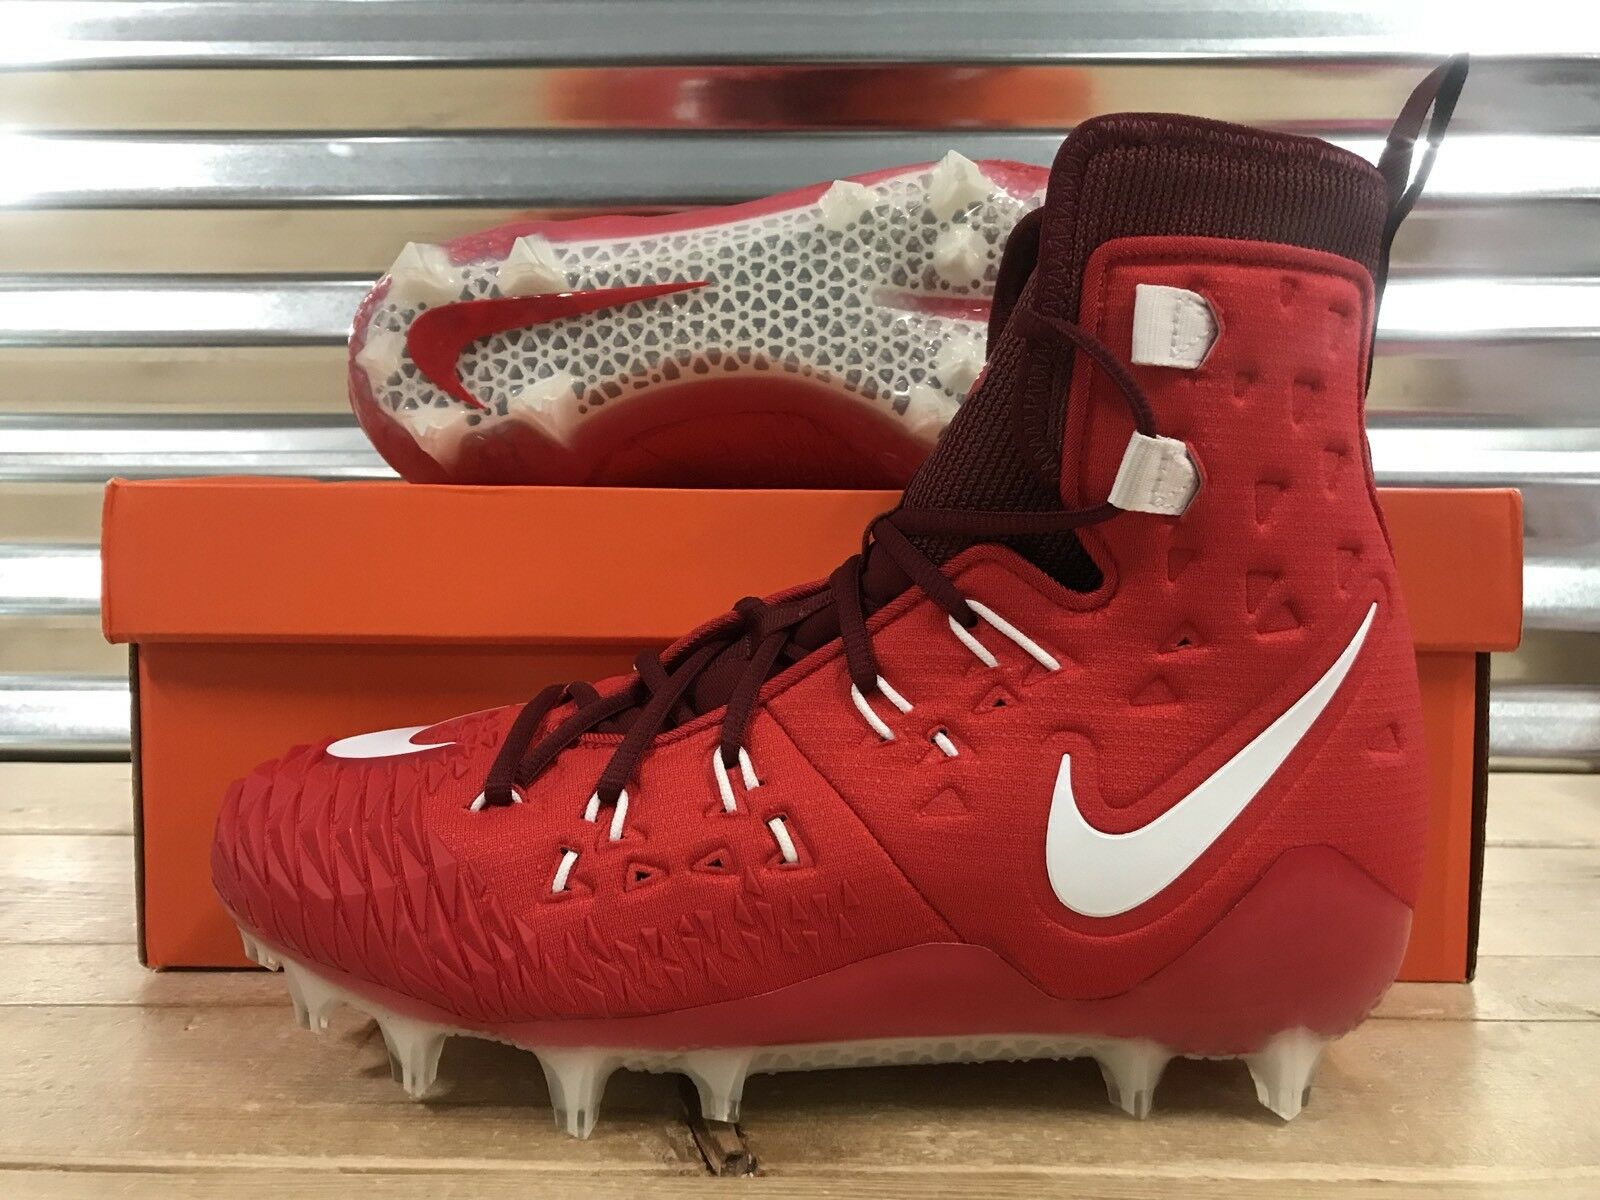 Nike Force Savage Elite TD Lineman Football Cleats Red White Price reduction Wild casual shoes